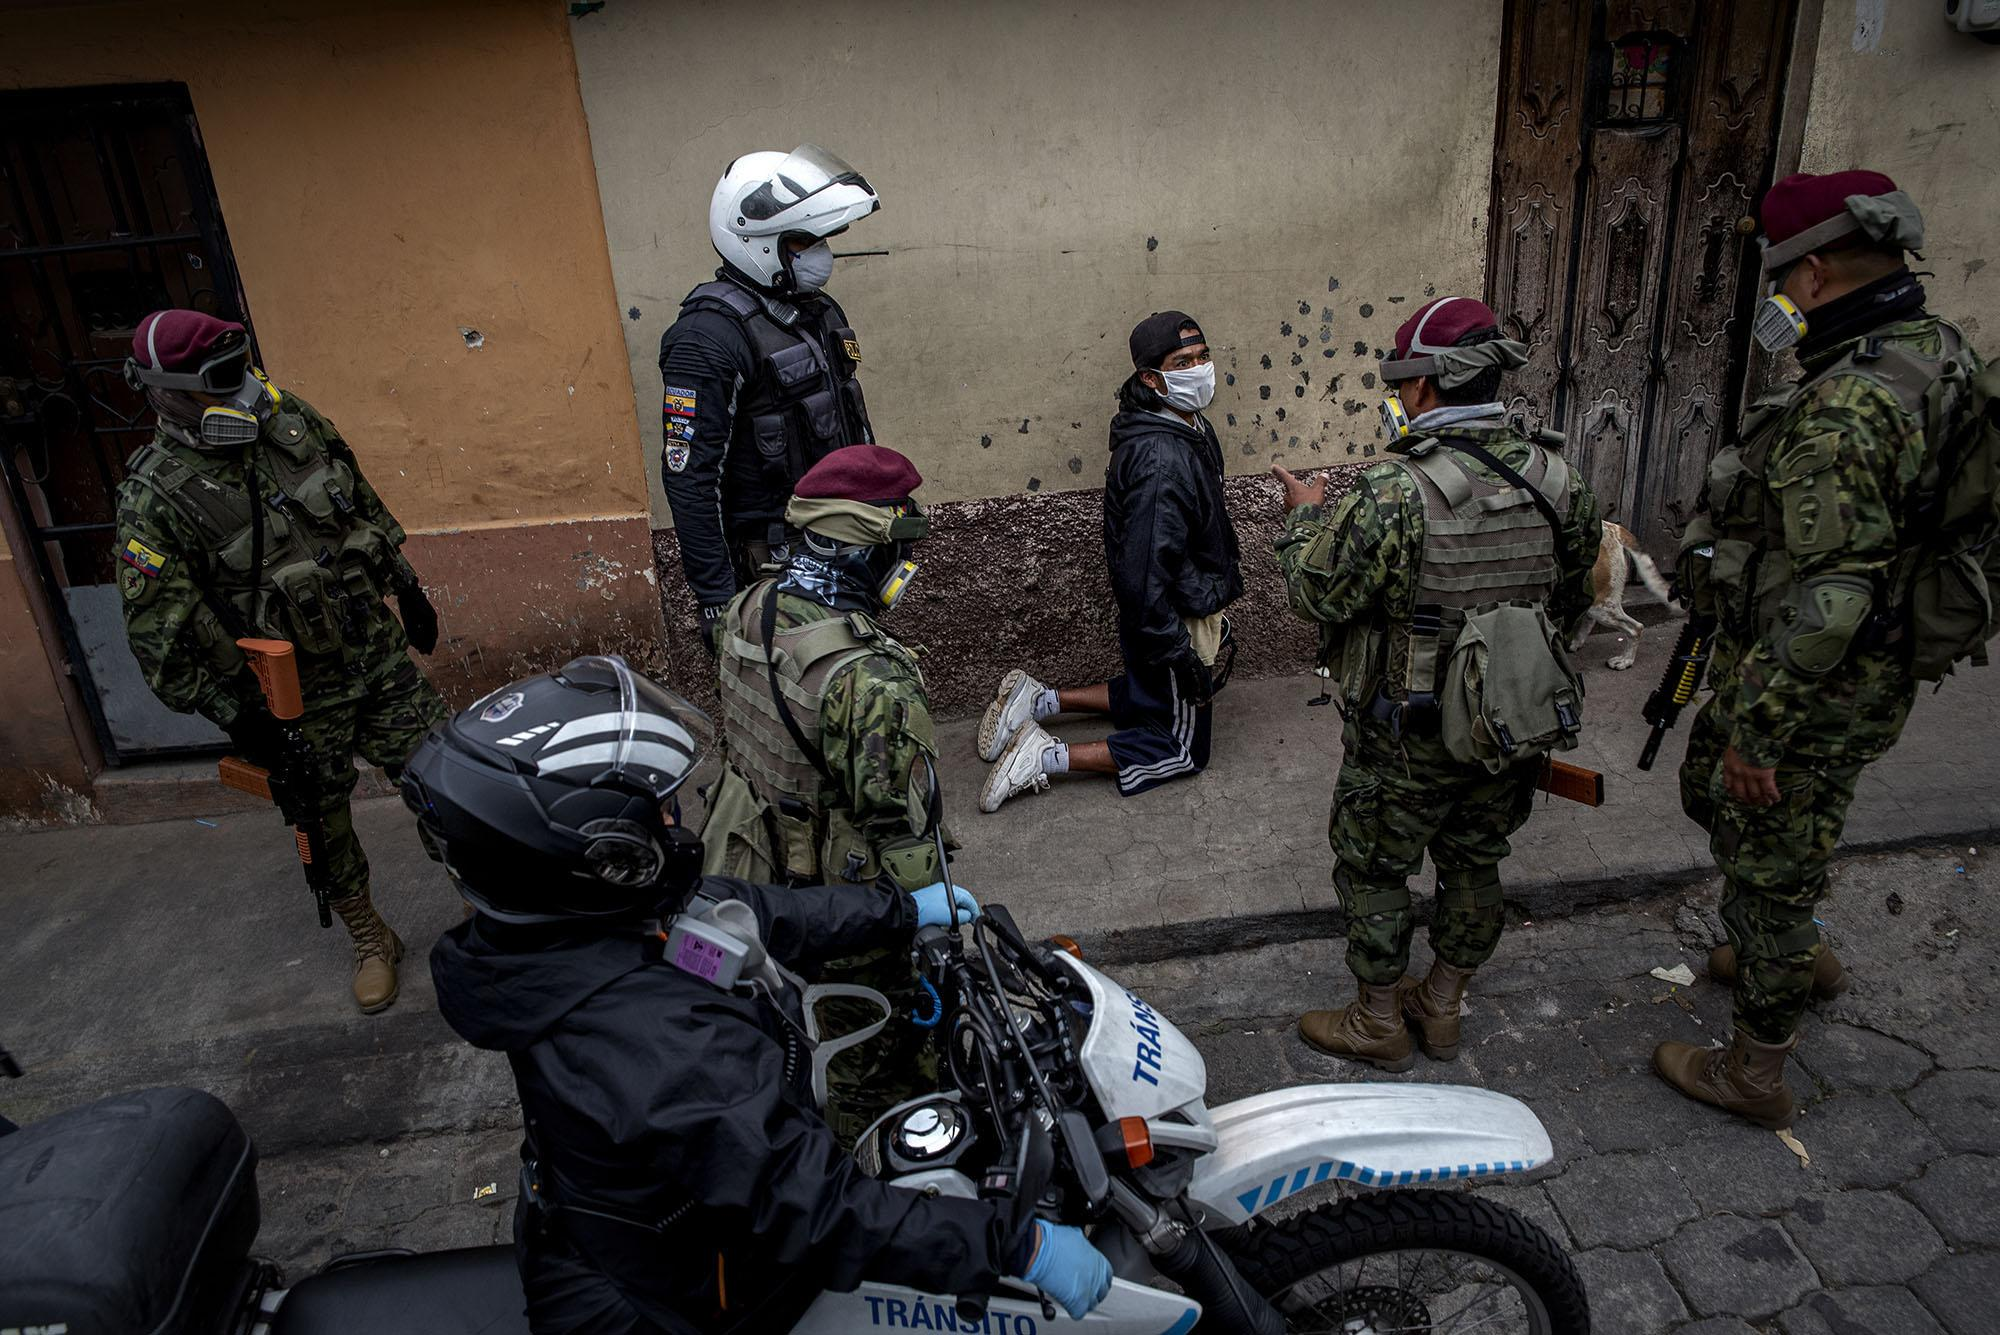 Army and police confiscate a man who violates the curfew in the peripheral neighborhoods of the city on Friday, May 8, 2020 in Quito - Ecuador. Johis Alarcón for The New York Times